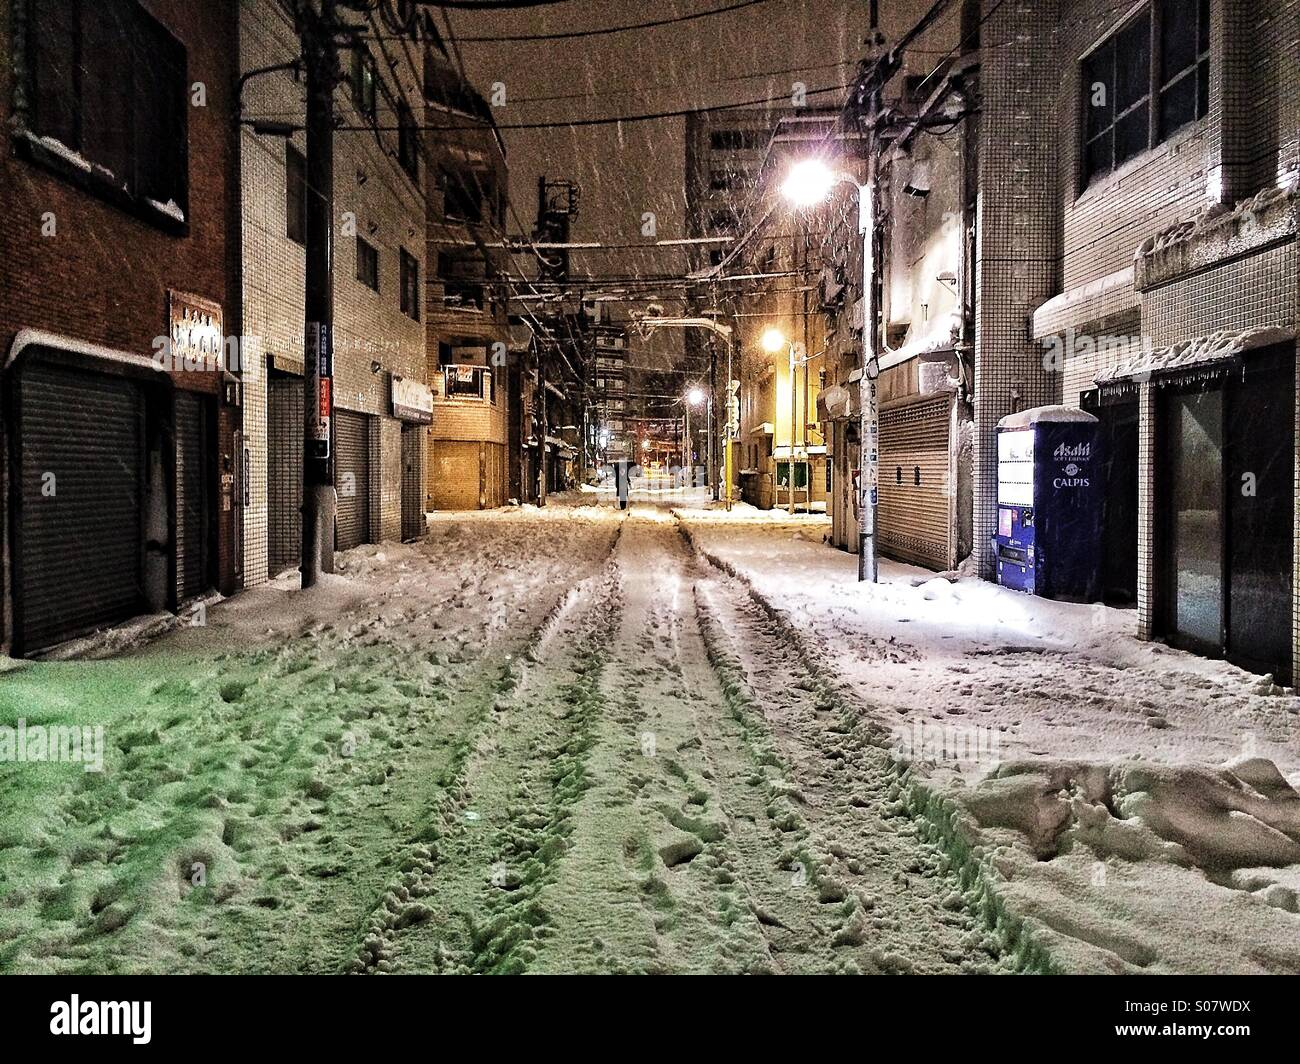 Tokyo alley in the snow - Stock Image